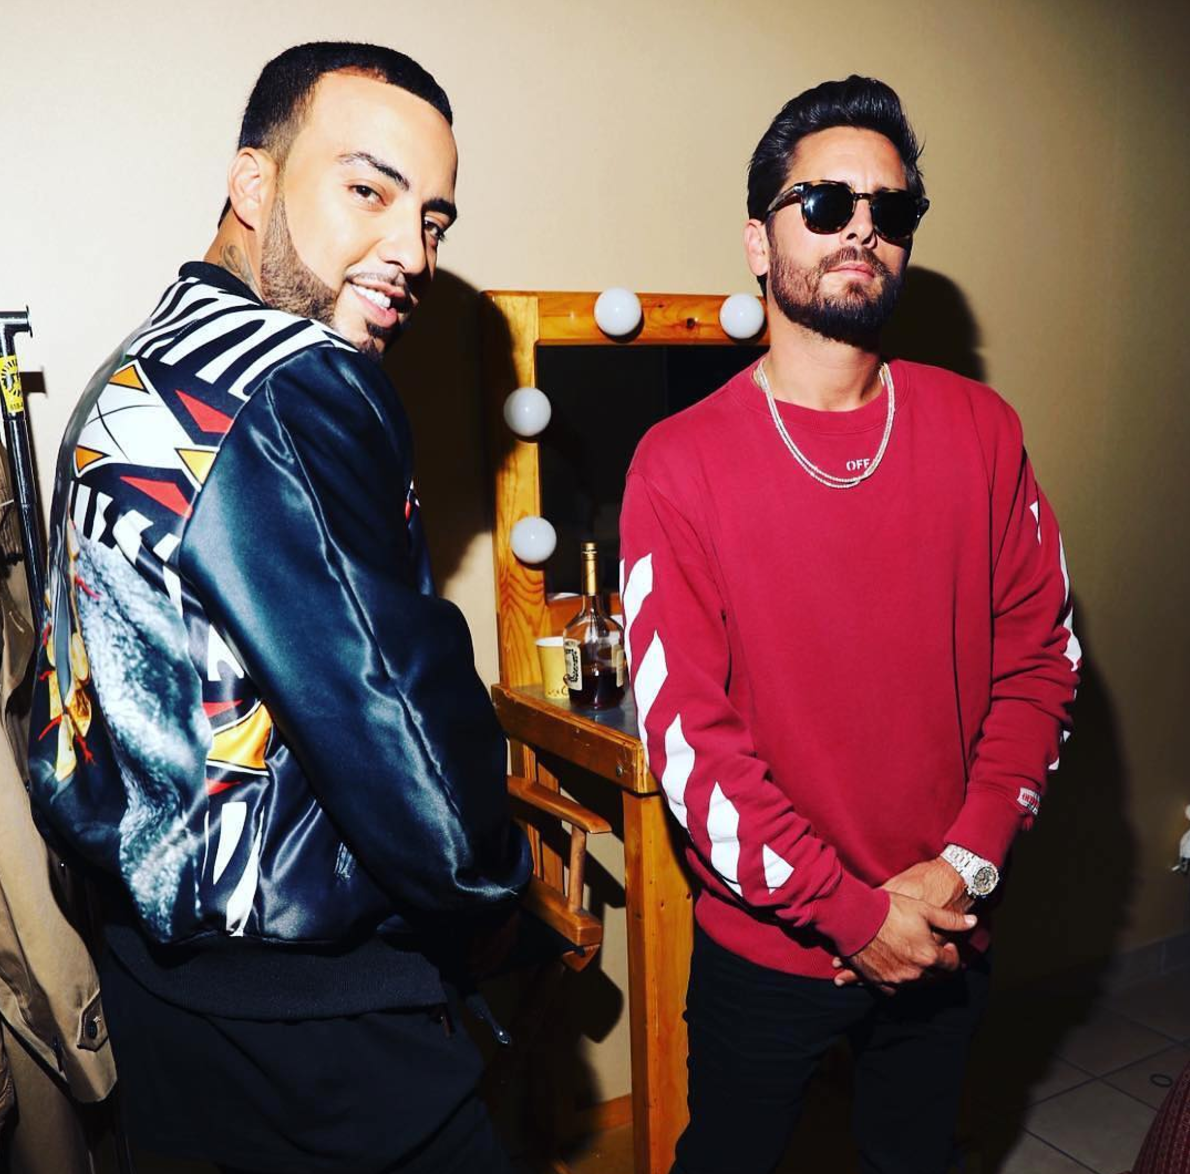 SPOTTED: French Montana In Gucci And Scott Disick In Off-White